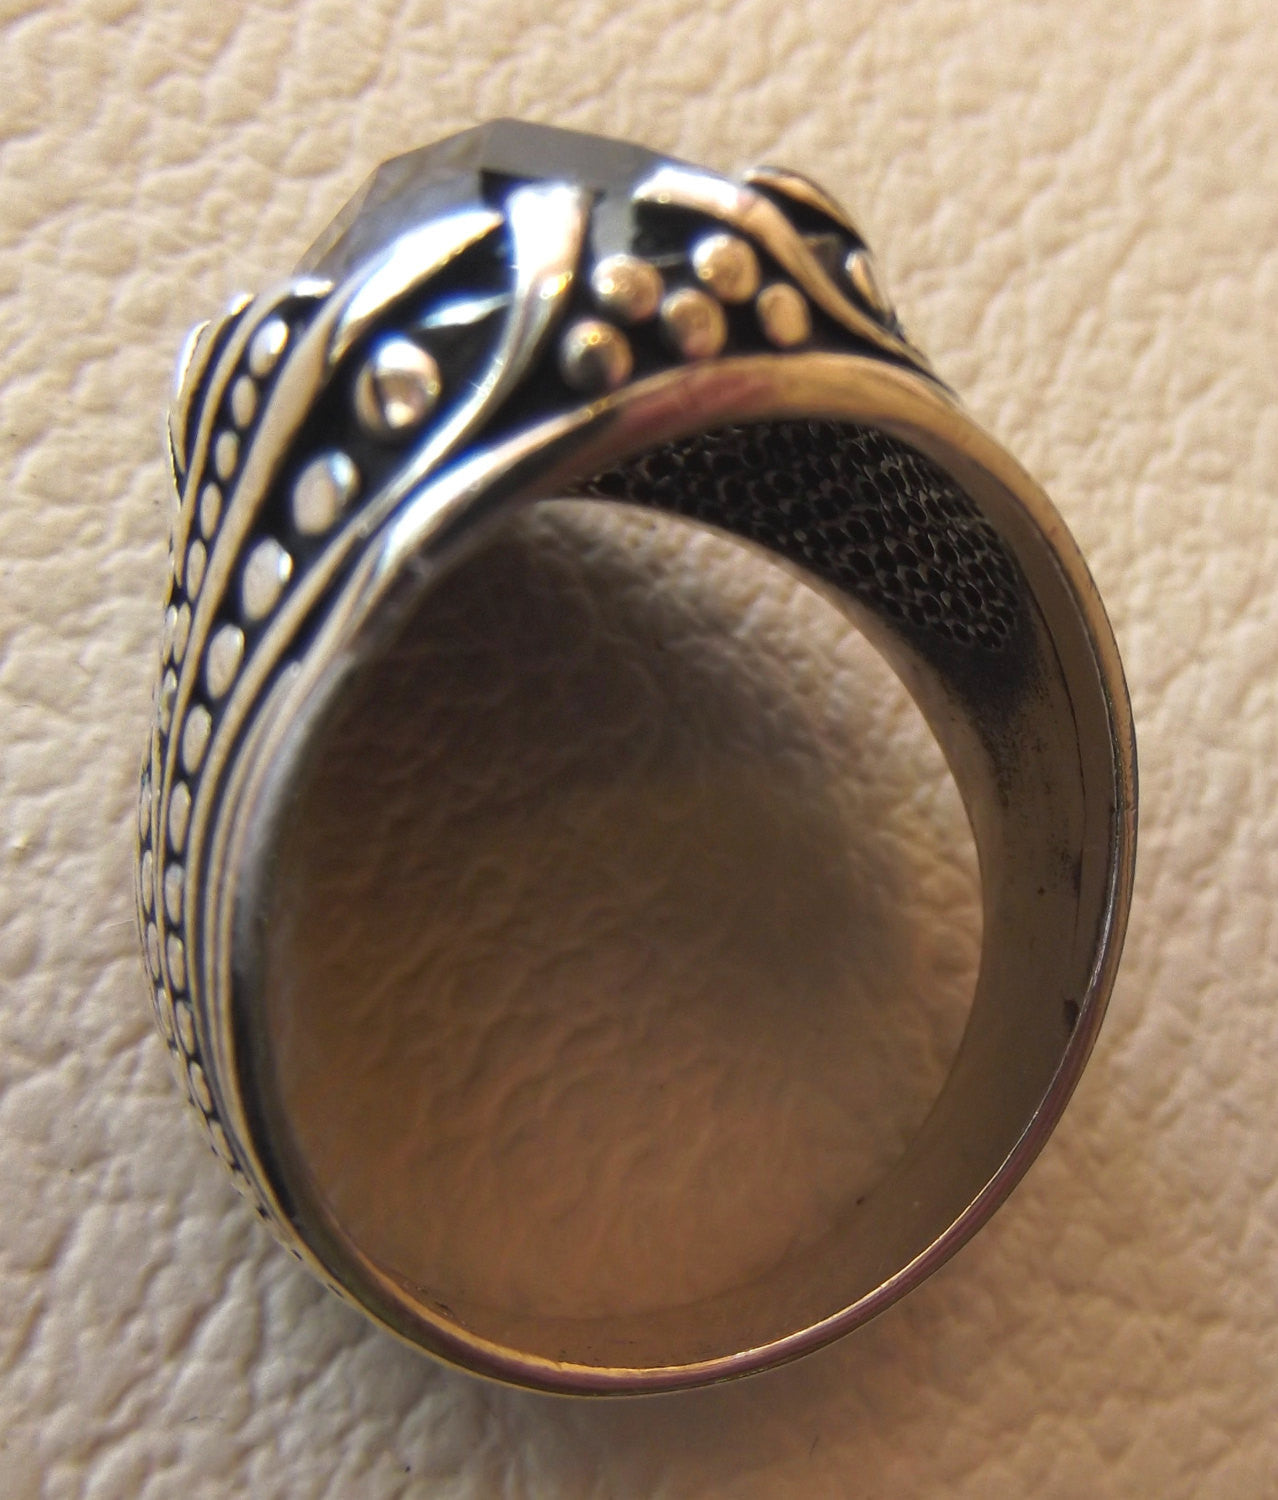 men ring black white sterling silver 925 all sizes jewelry oval cabochon onyx stone middle eastern oriental Ottoman arabic turkish style